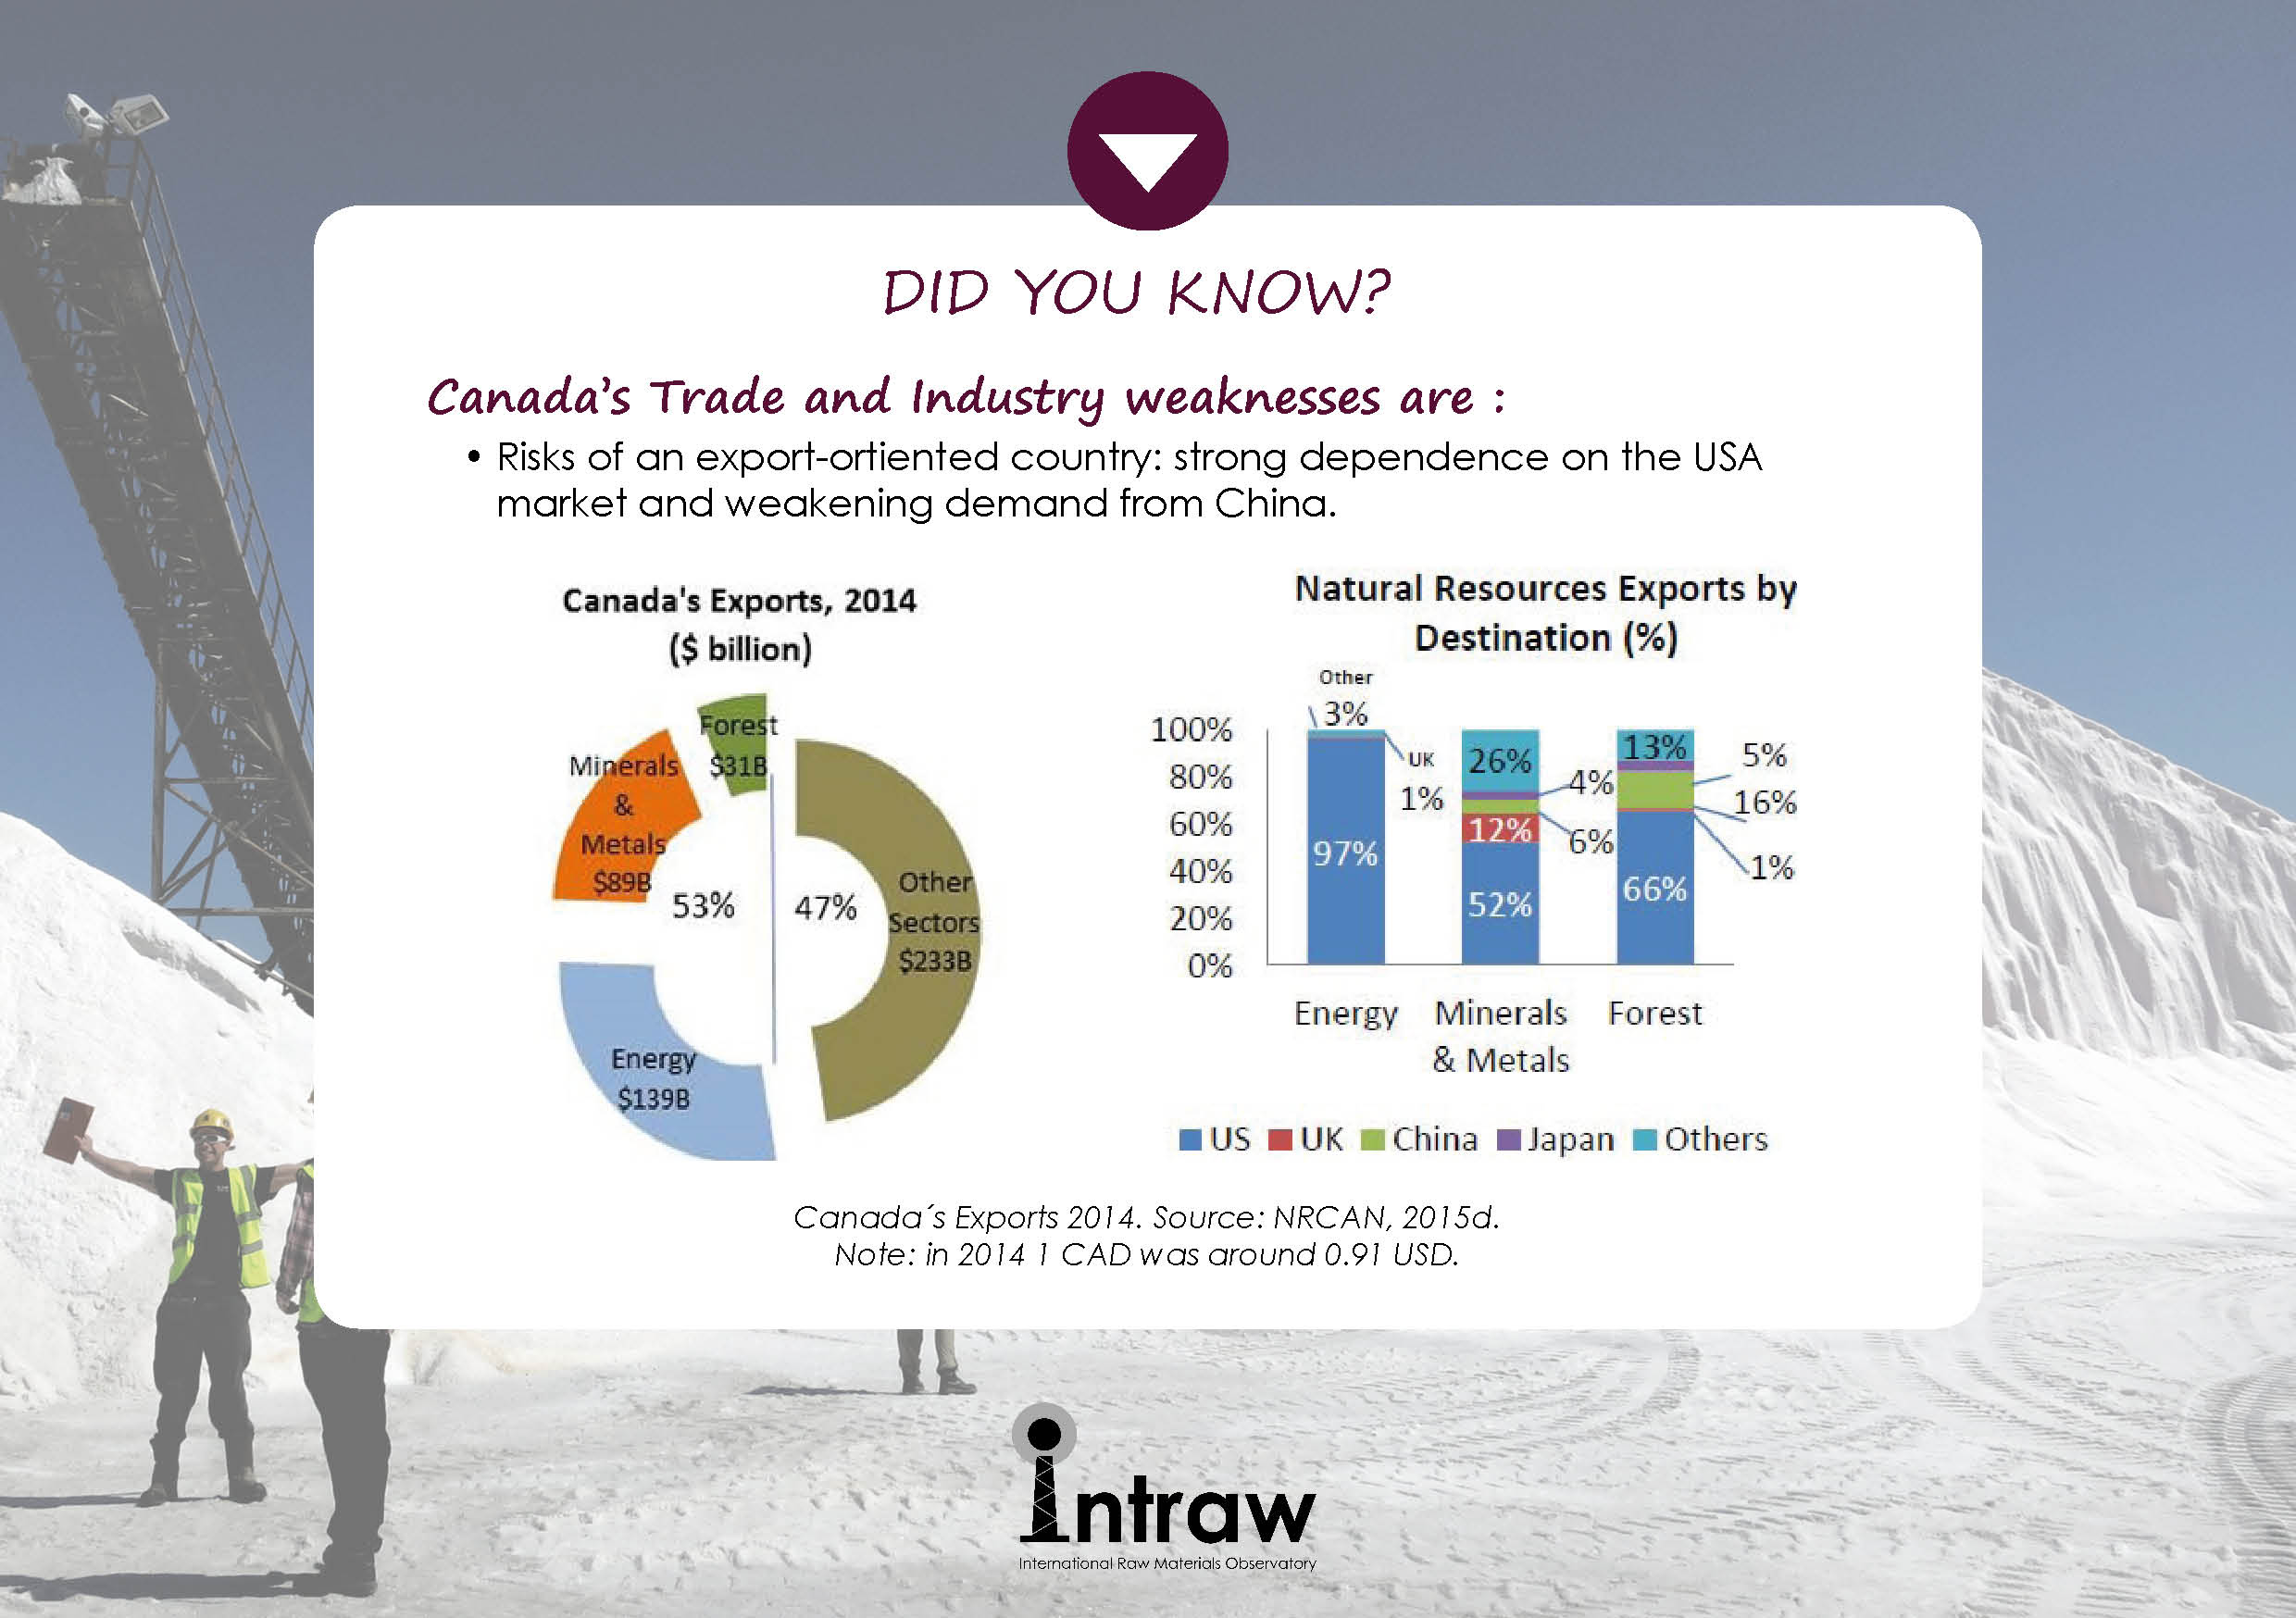 Check how #Canada is doing on #TradeAndIndustry, now with a look on its weakness